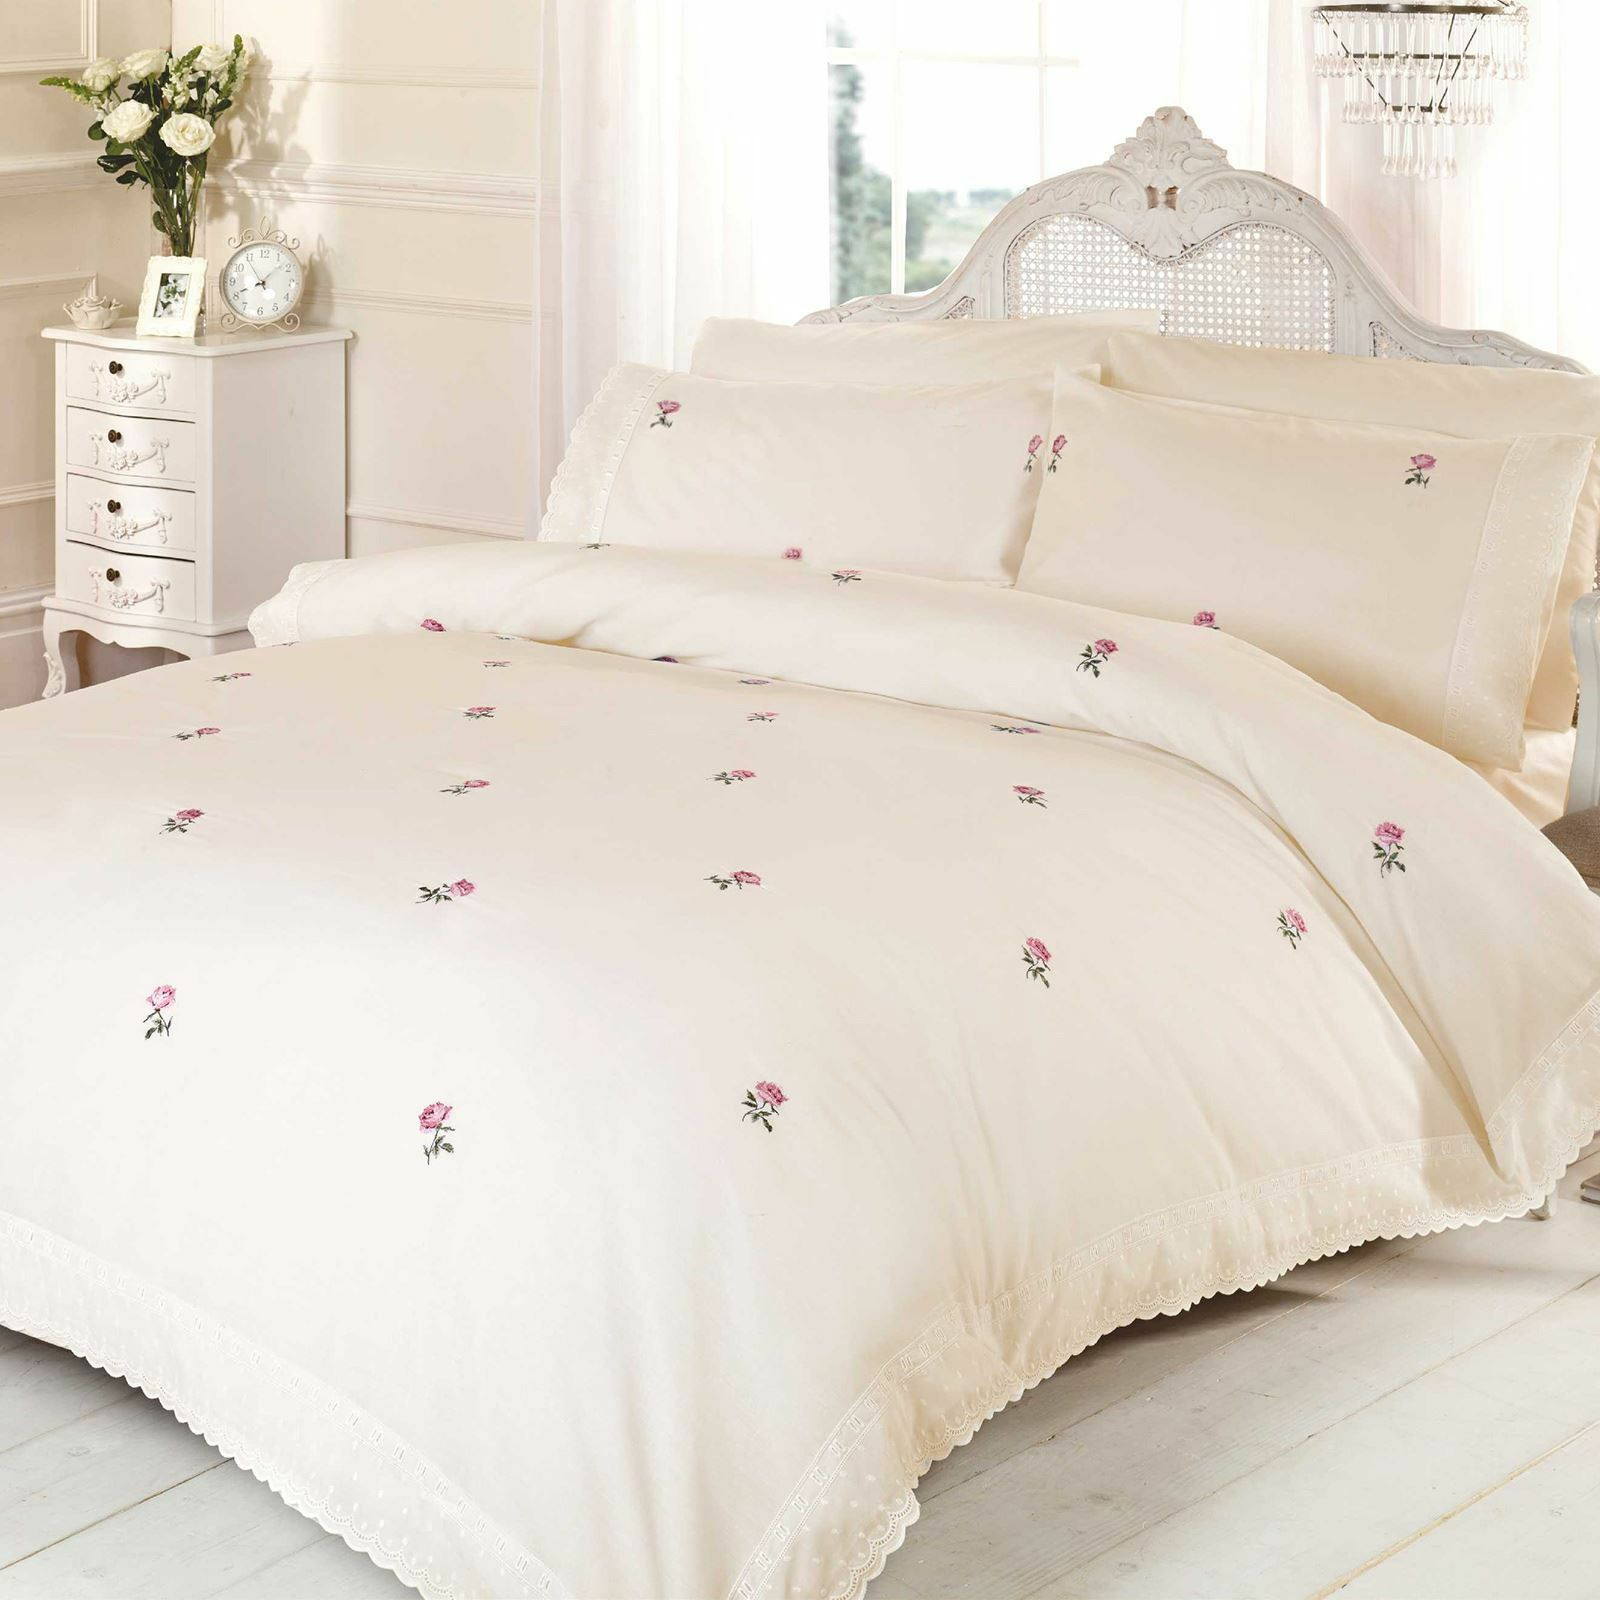 ALICIA FLORAL CREAM   PINK KING SIZE DUVET COVER SET EMBROIDERED BEDDING